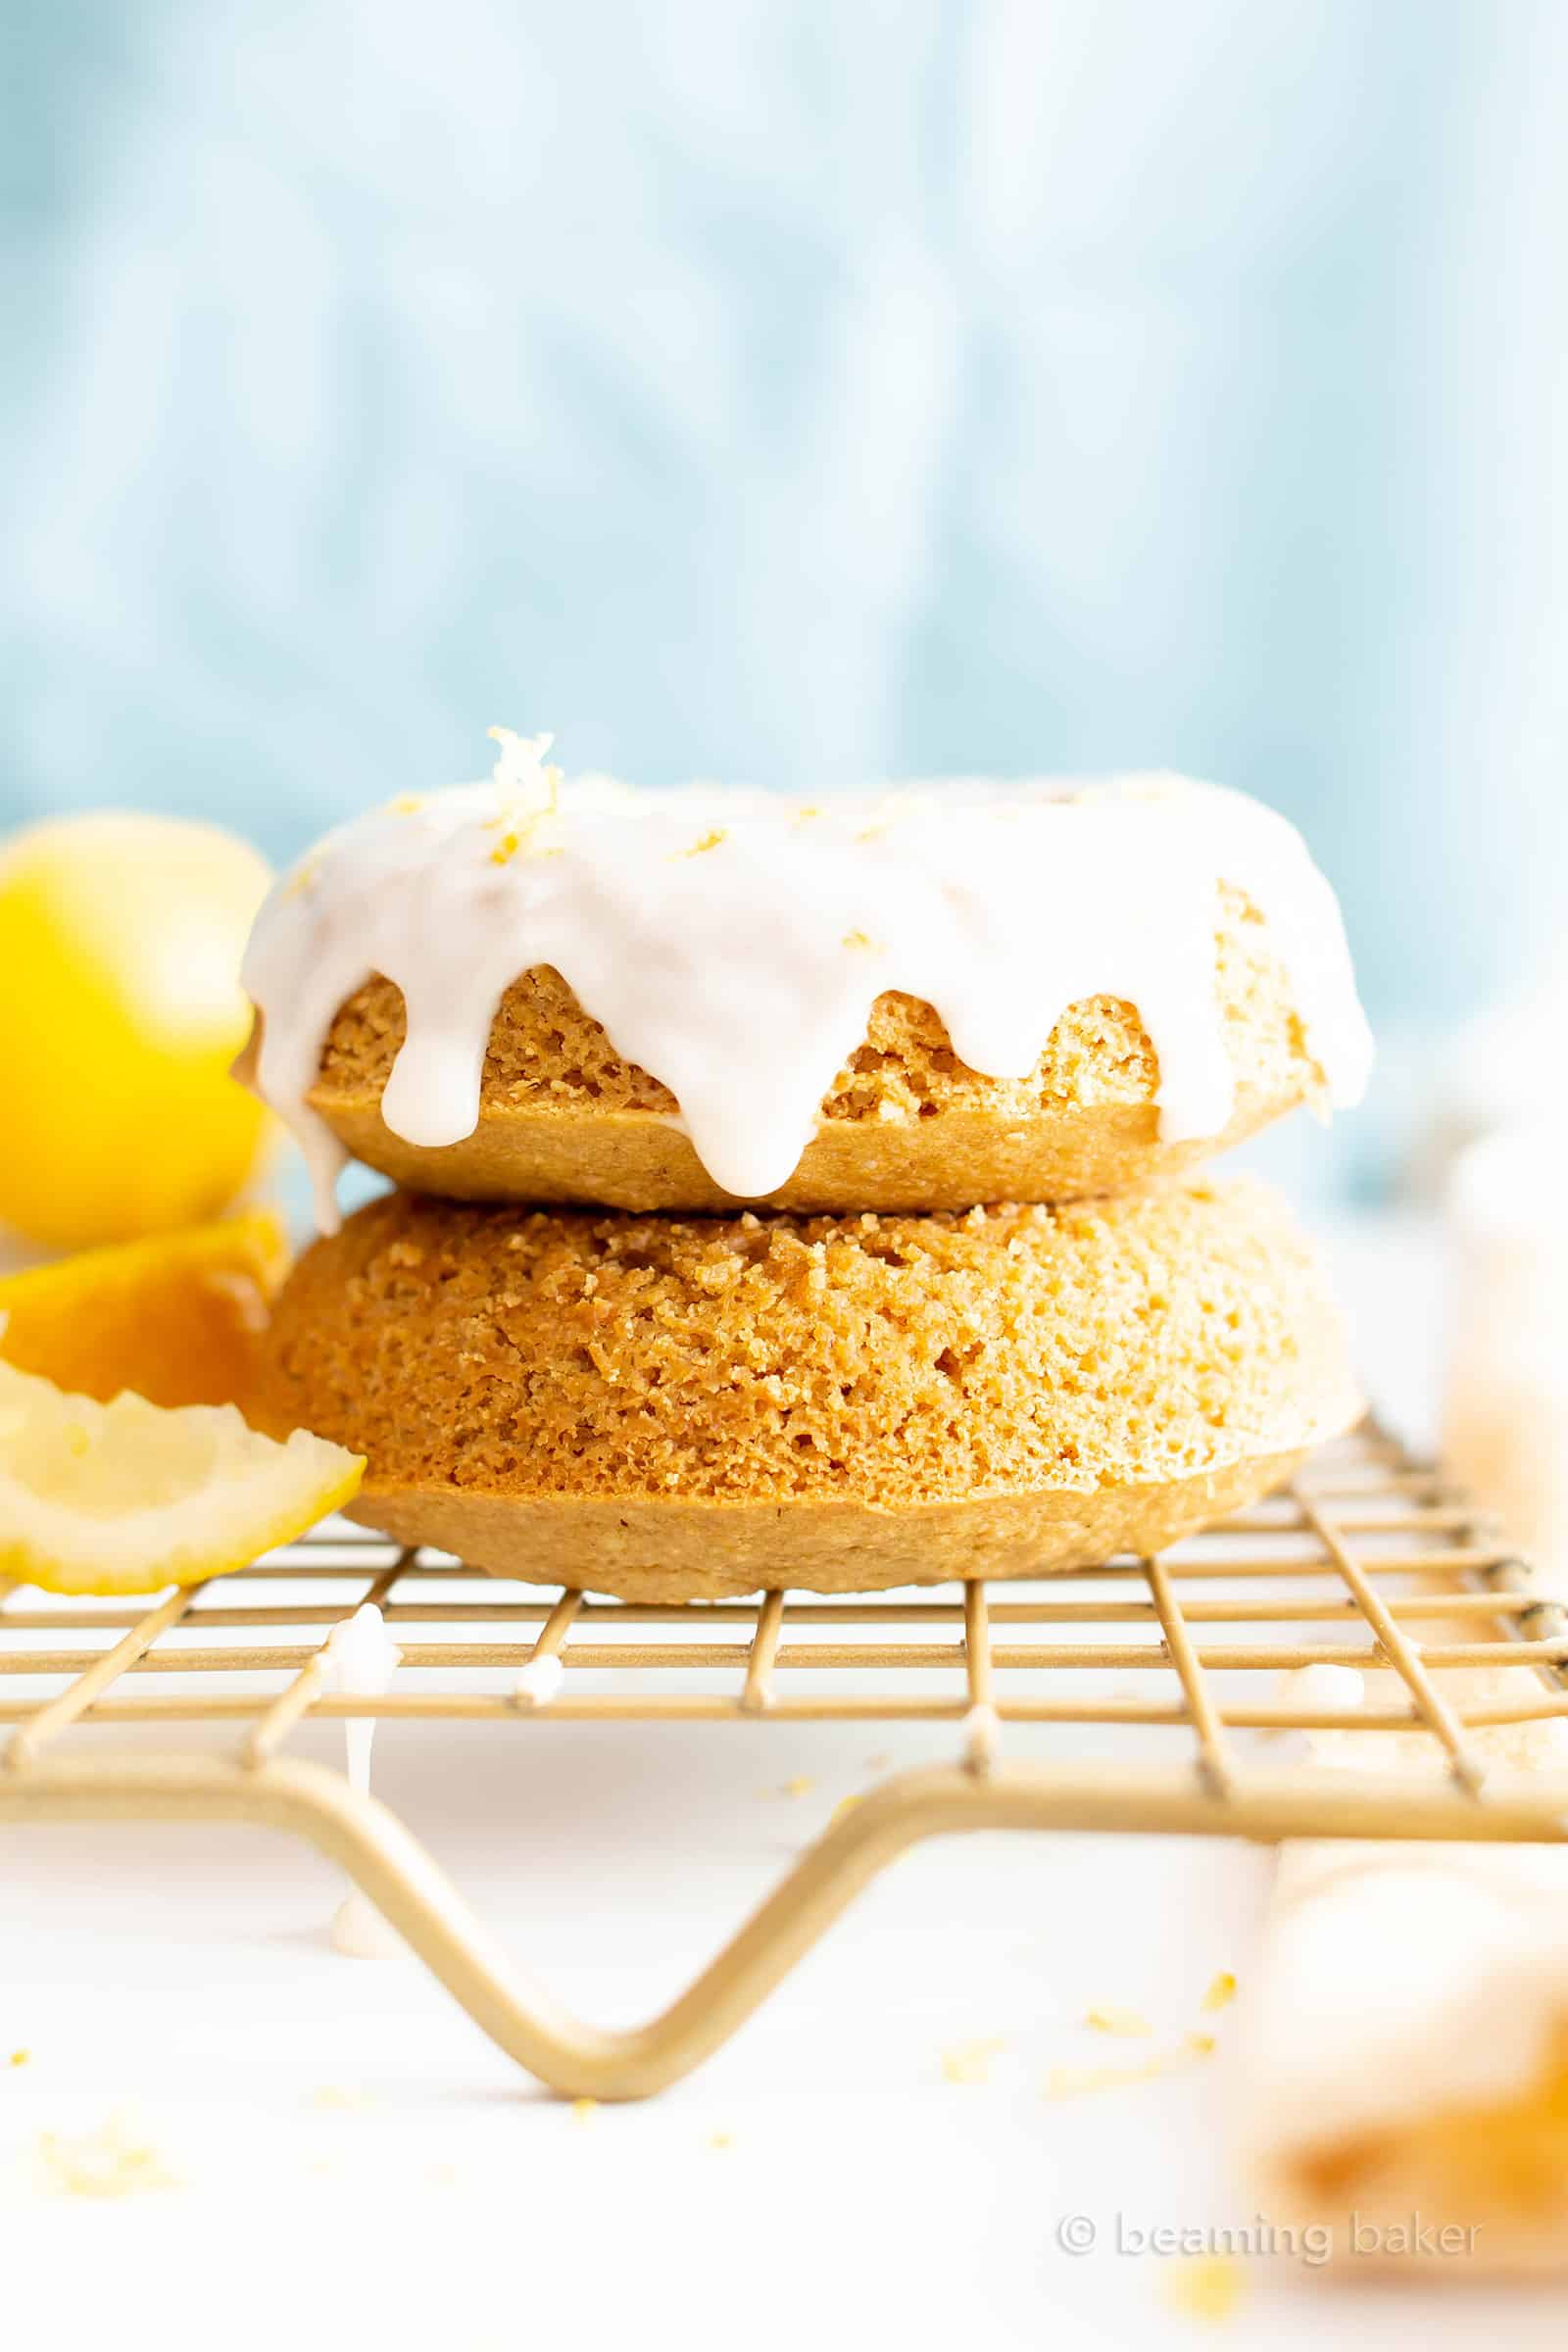 Vegan Soft Baked Lemon Donuts with Lemon Glaze (GF): this vegan gluten free donuts recipe yields soft and fluffy donuts with easy homemade lemon glaze! Healthy Doughnuts, Dairy-Free, Refined Sugar-Free. #Vegan #Donuts #Lemon #GlutenFree #DairyFree | Recipe at BeamingBaker.com